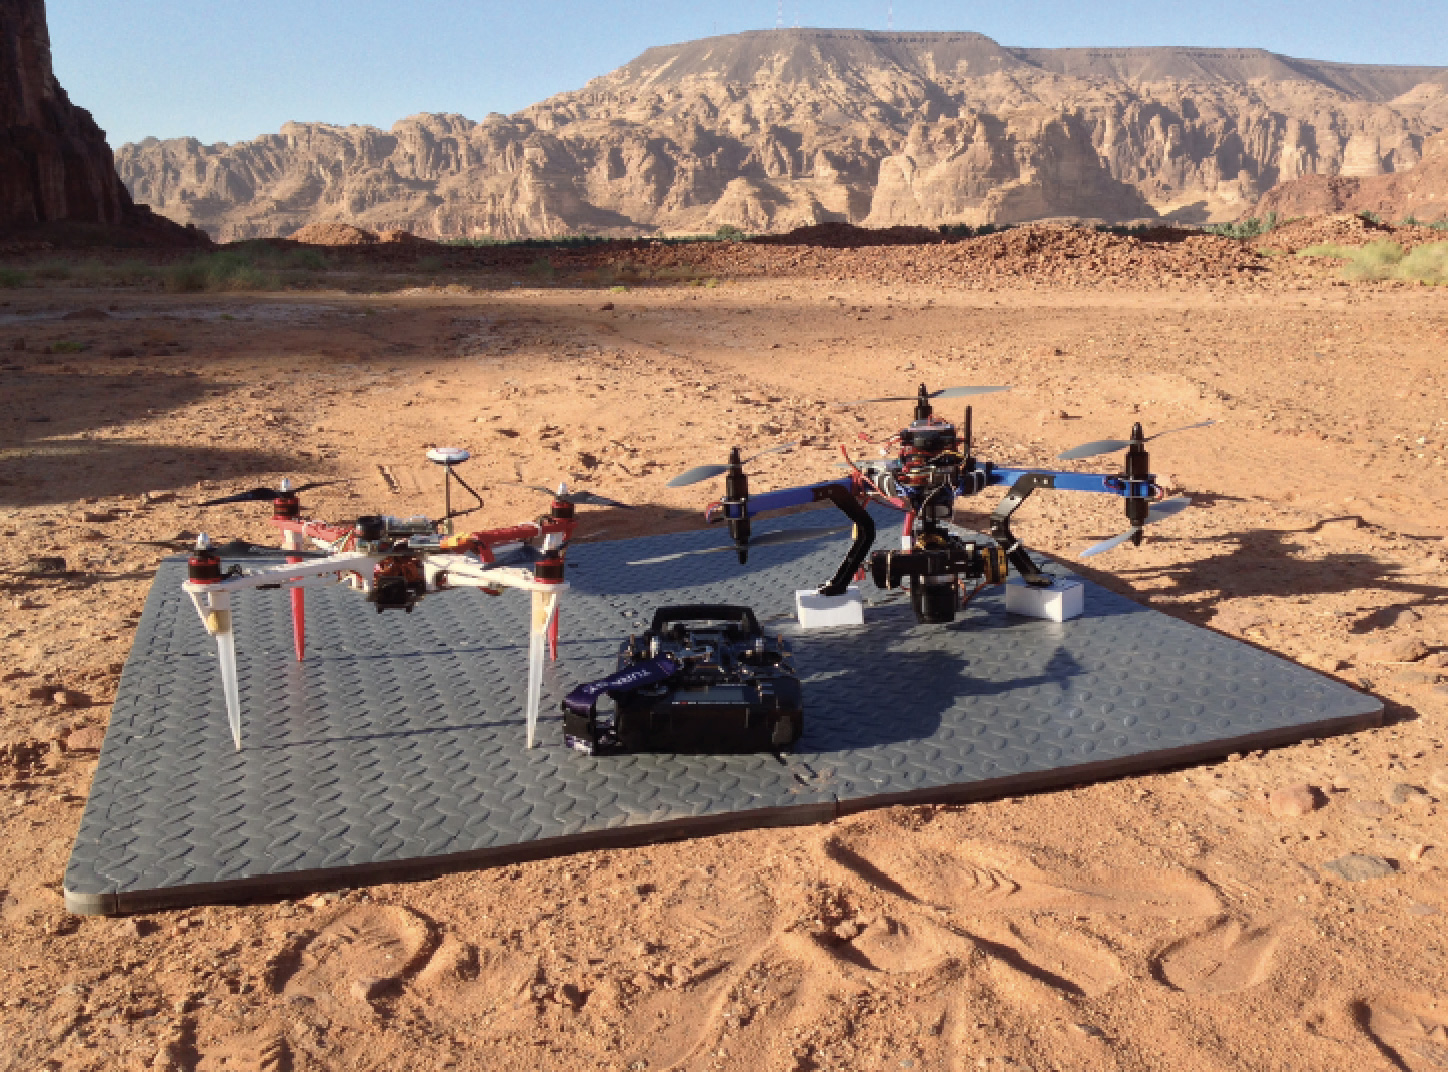 Timna Valley Drones